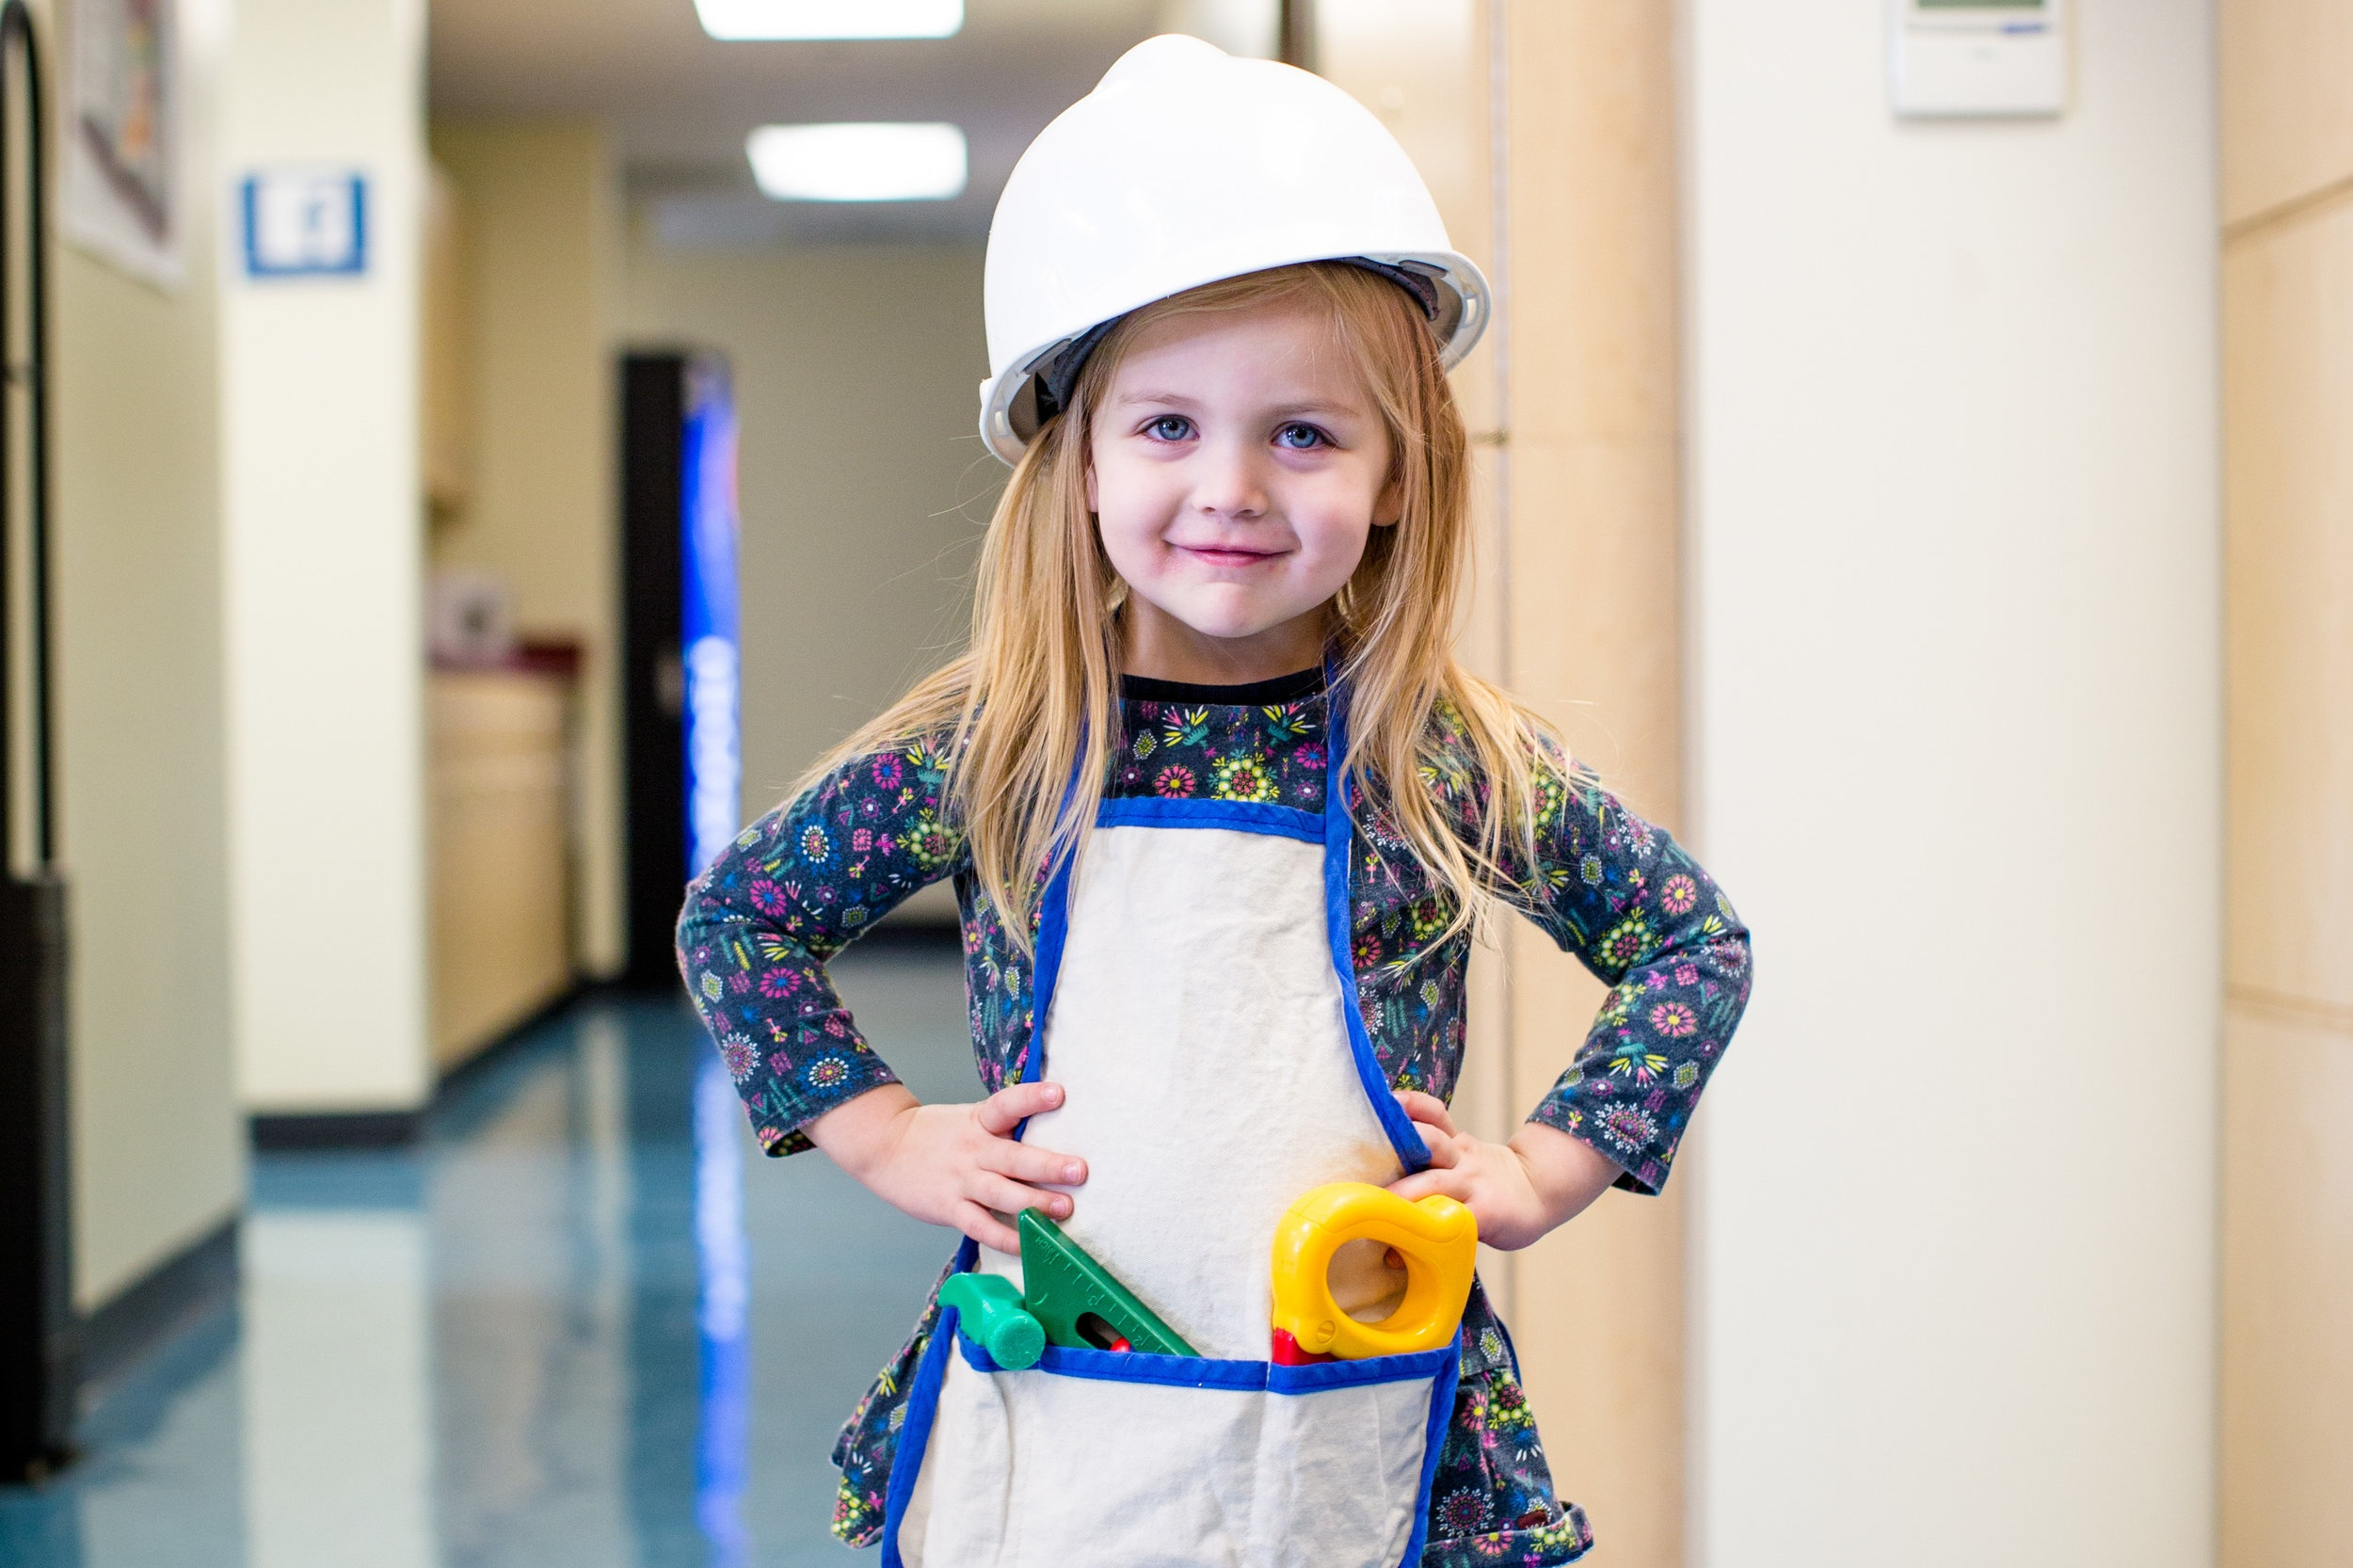 Building a Healthier Facility for Children - The construction team plays a pivotal role in establishing healthier conditions that will affect children throughout the life of the facility.